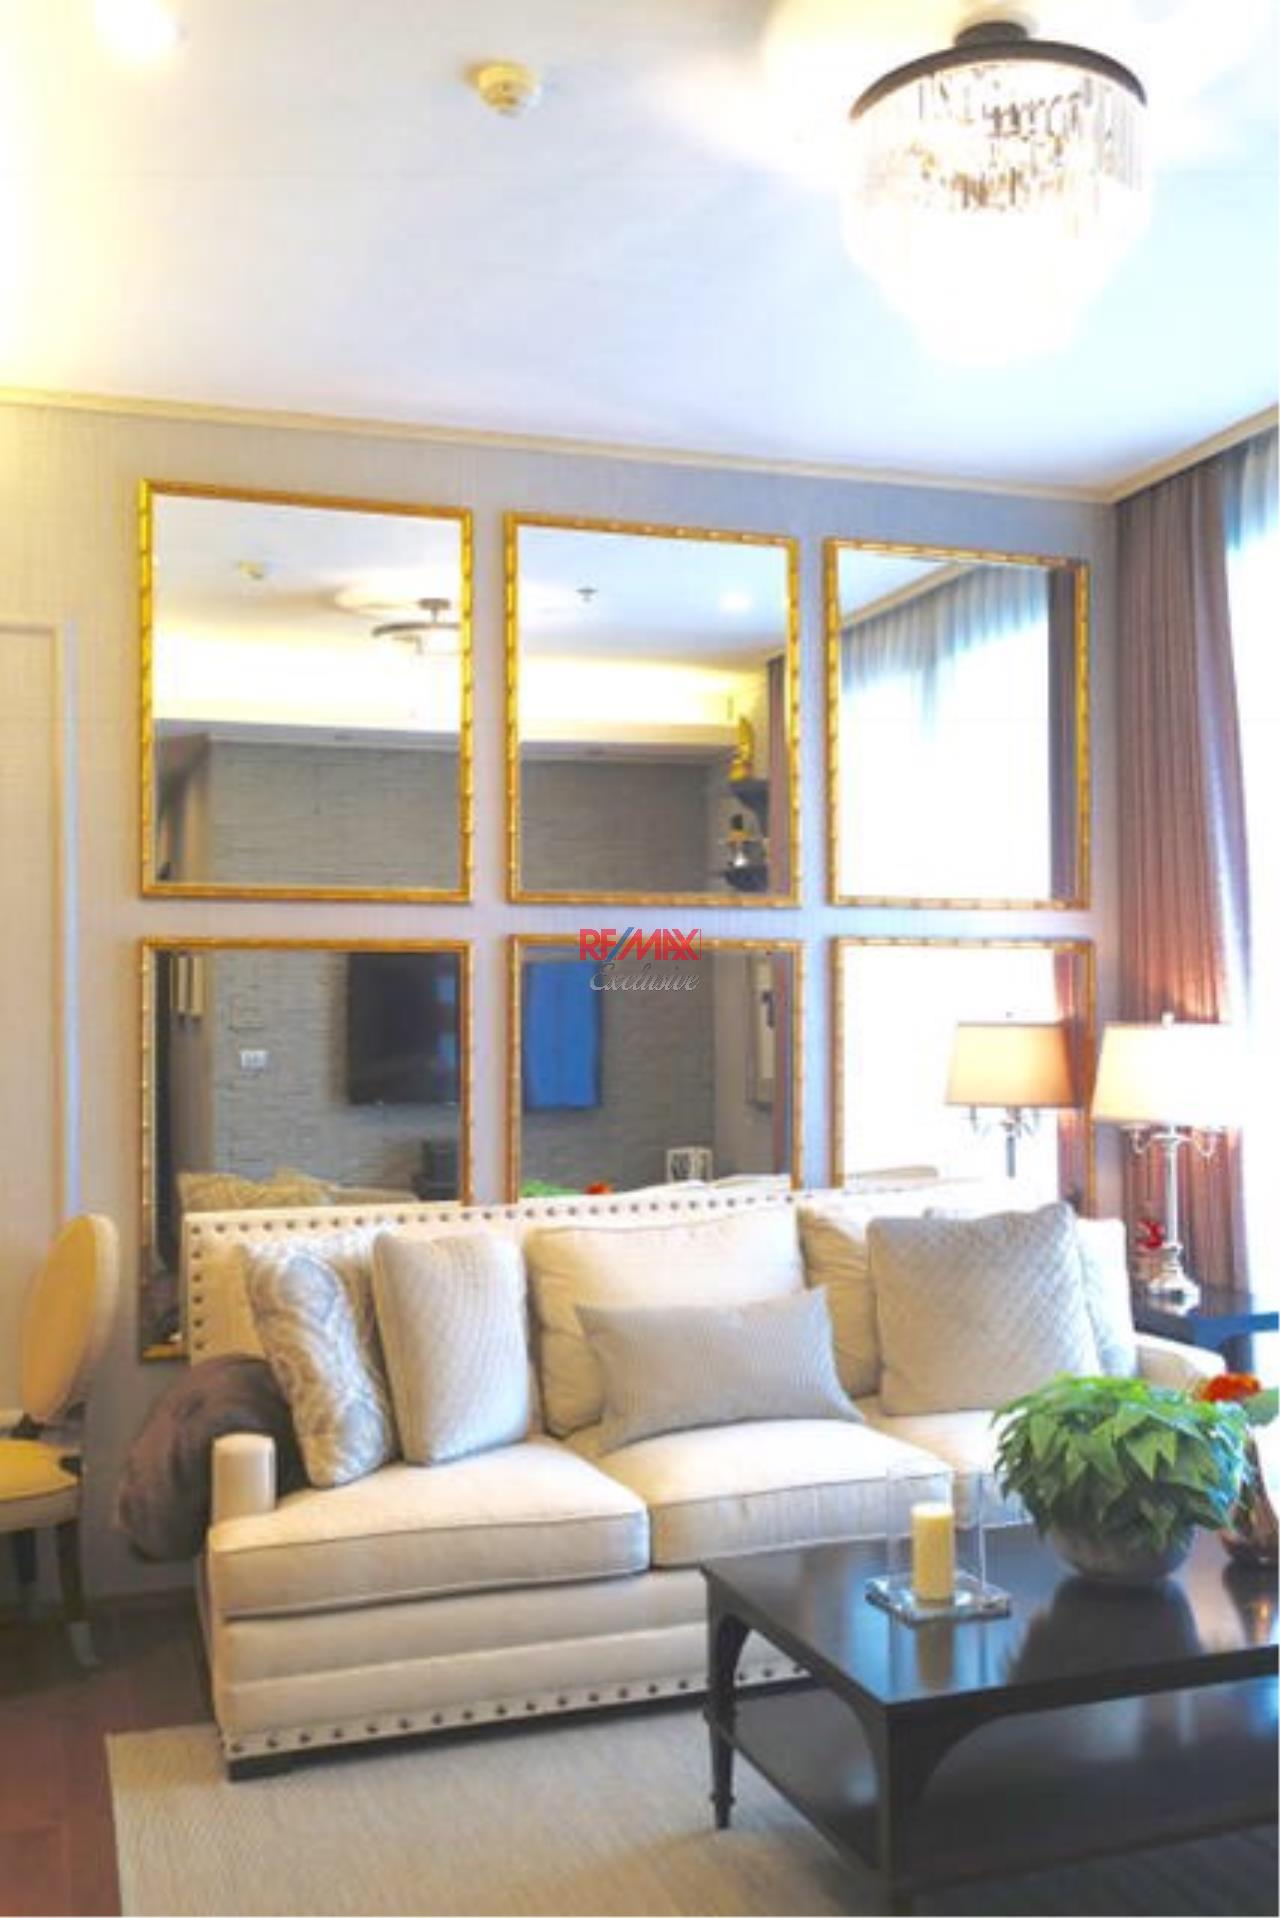 RE/MAX Exclusive Agency's Quattro 2 bedroom luxury deco for rent 75,000 THb 1